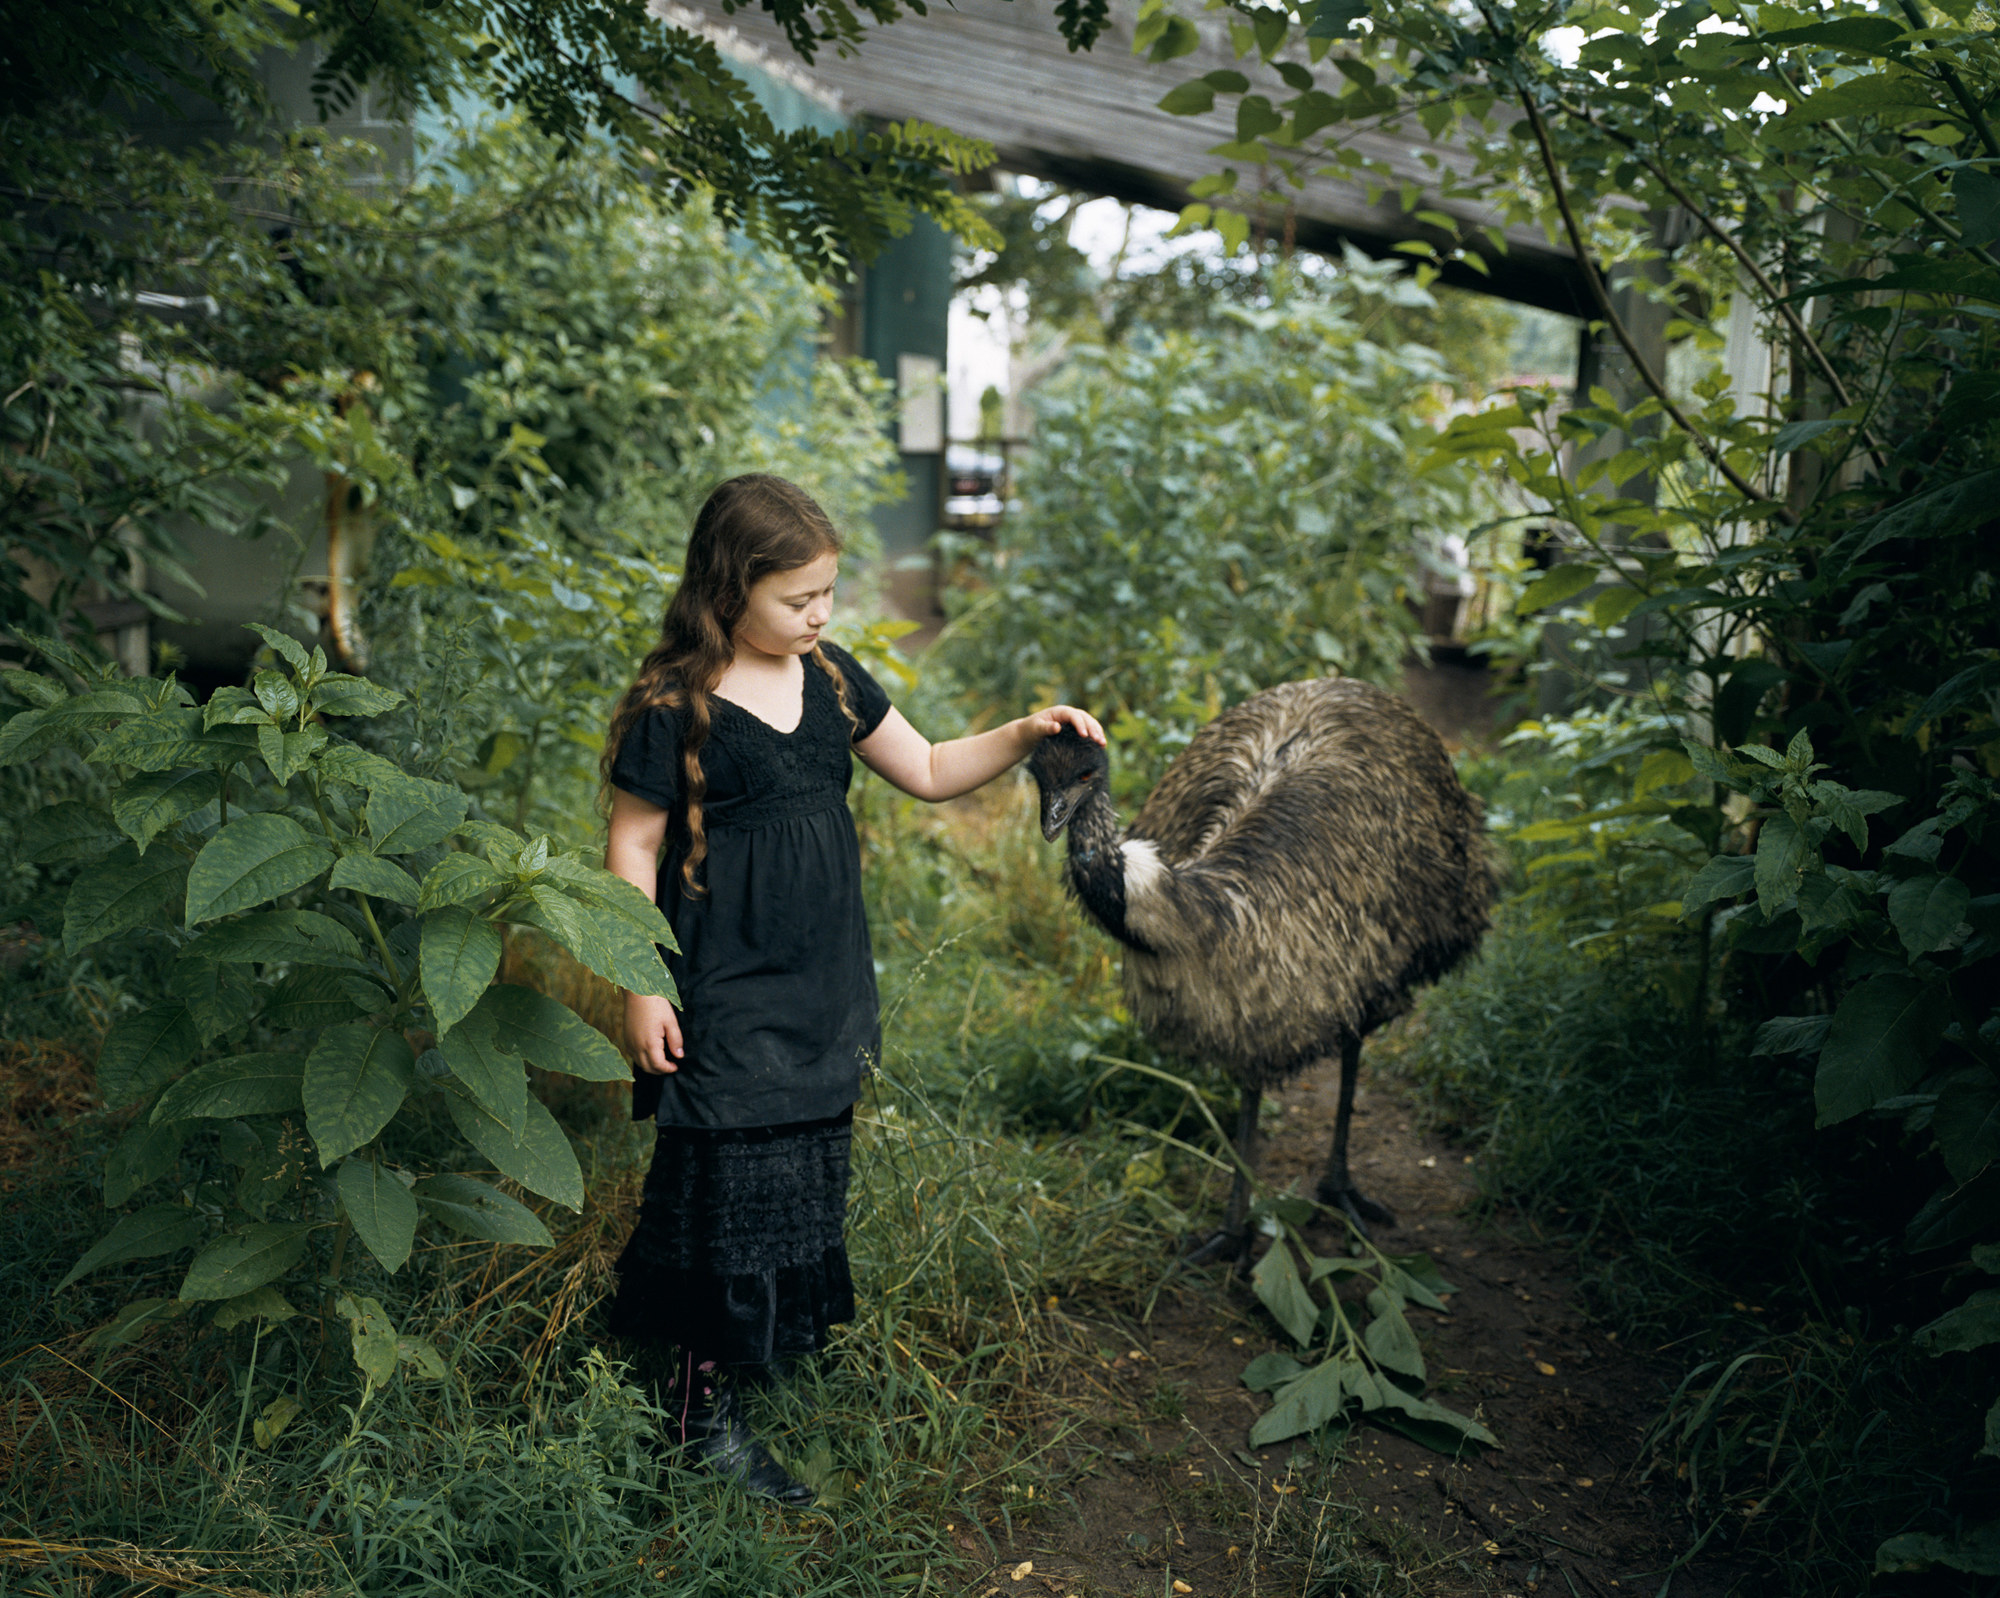 A young girl and an emu stand in a garden